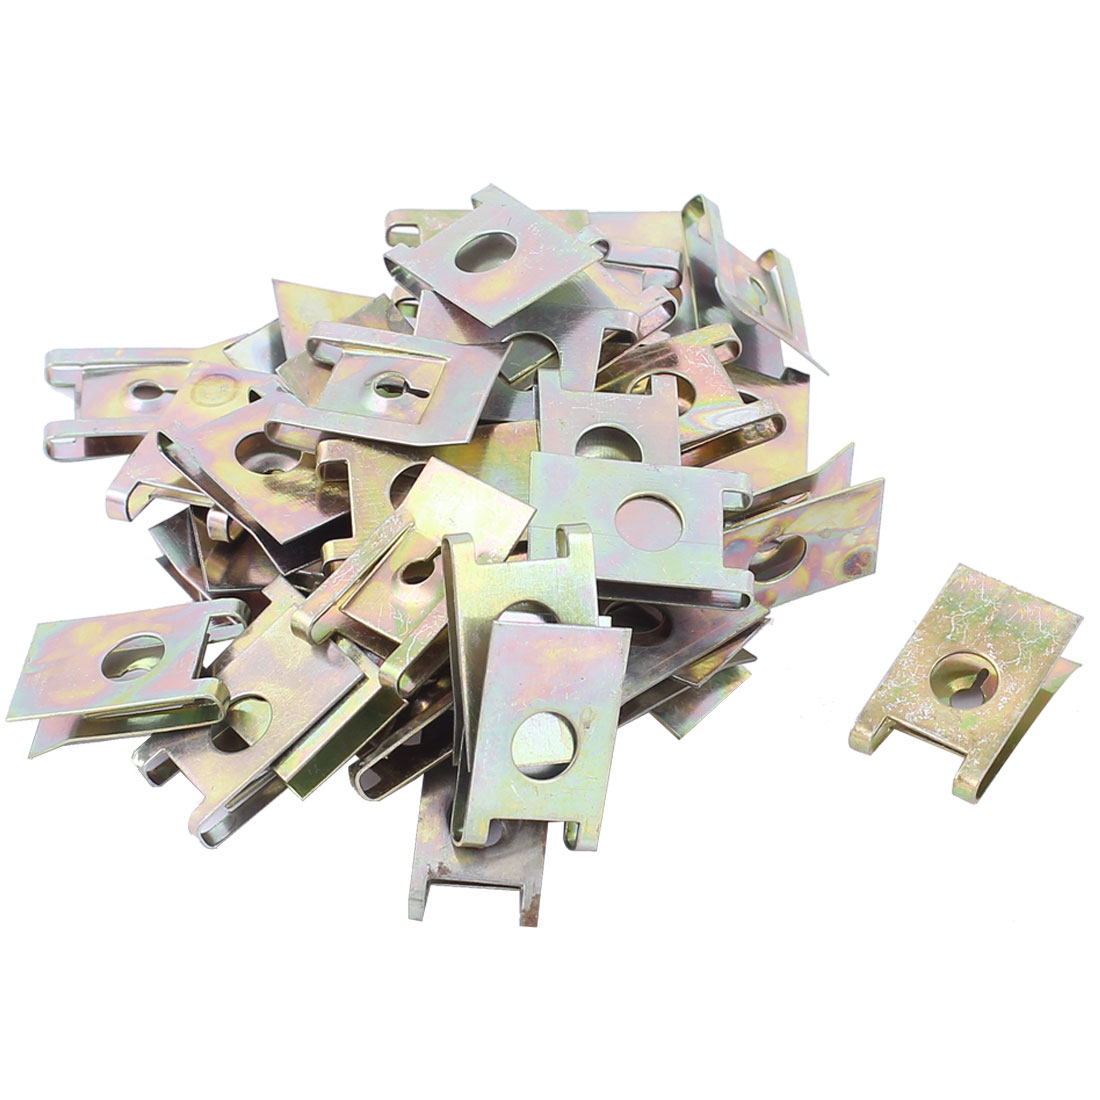 43Pcs 6mm Hole Diameter Bronze Tone Metal License Plate Screw Base Lock Clip Clamp